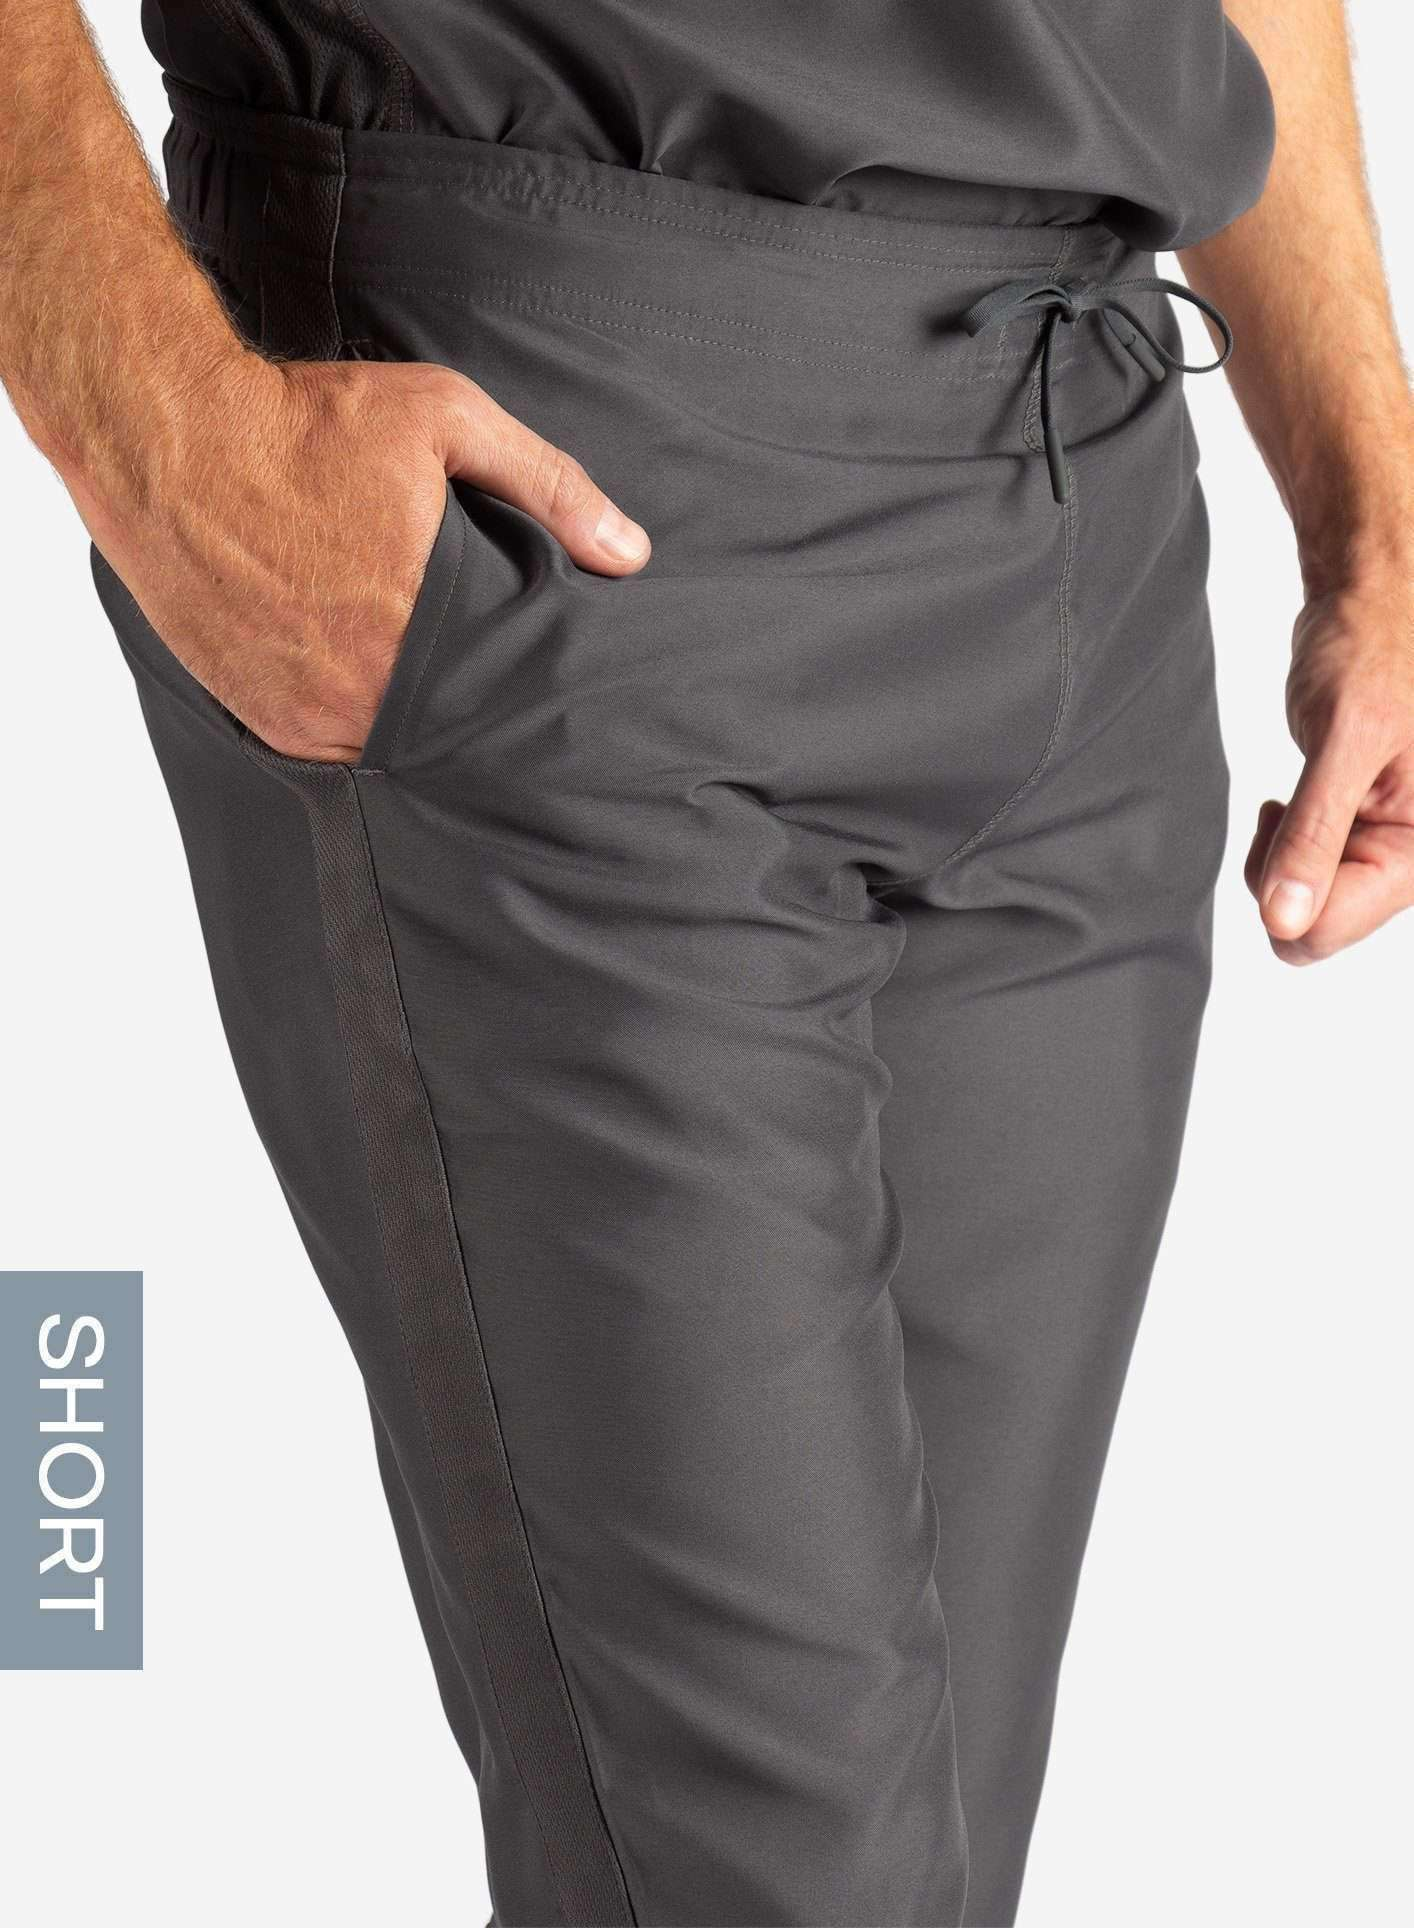 Men's Short Slim Fit Scrub Pants in Dark Grey Waistband View